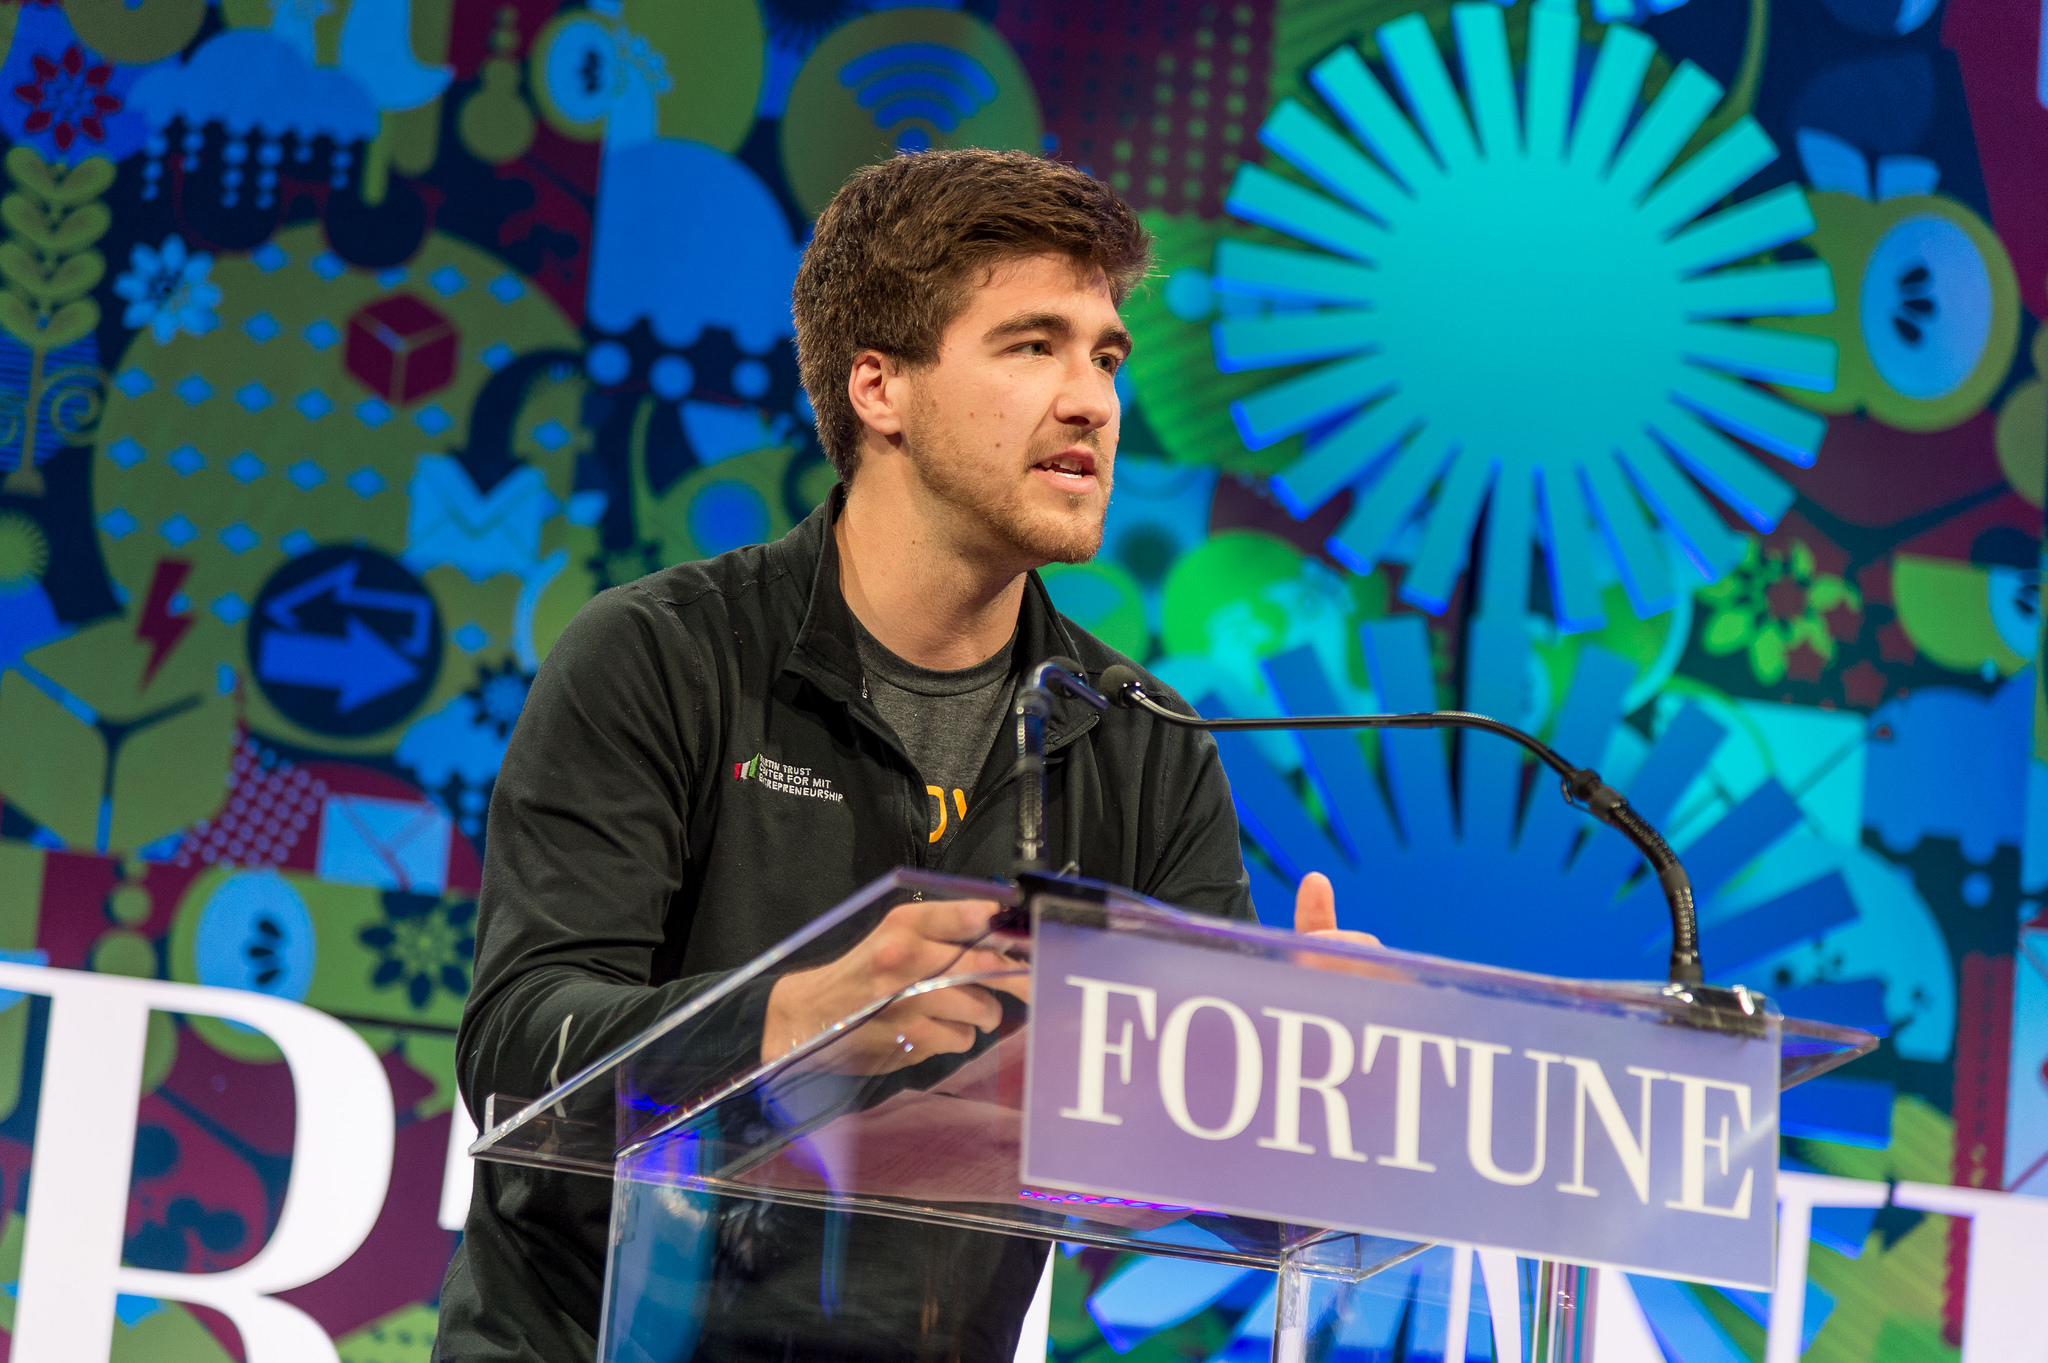 Gabe Blanchet, CEO and co-founder of Grove, makes his pitch to a panel of investors and the audience at Fortune's Brainstorm E summit on Tuesday, May 17, 2016.